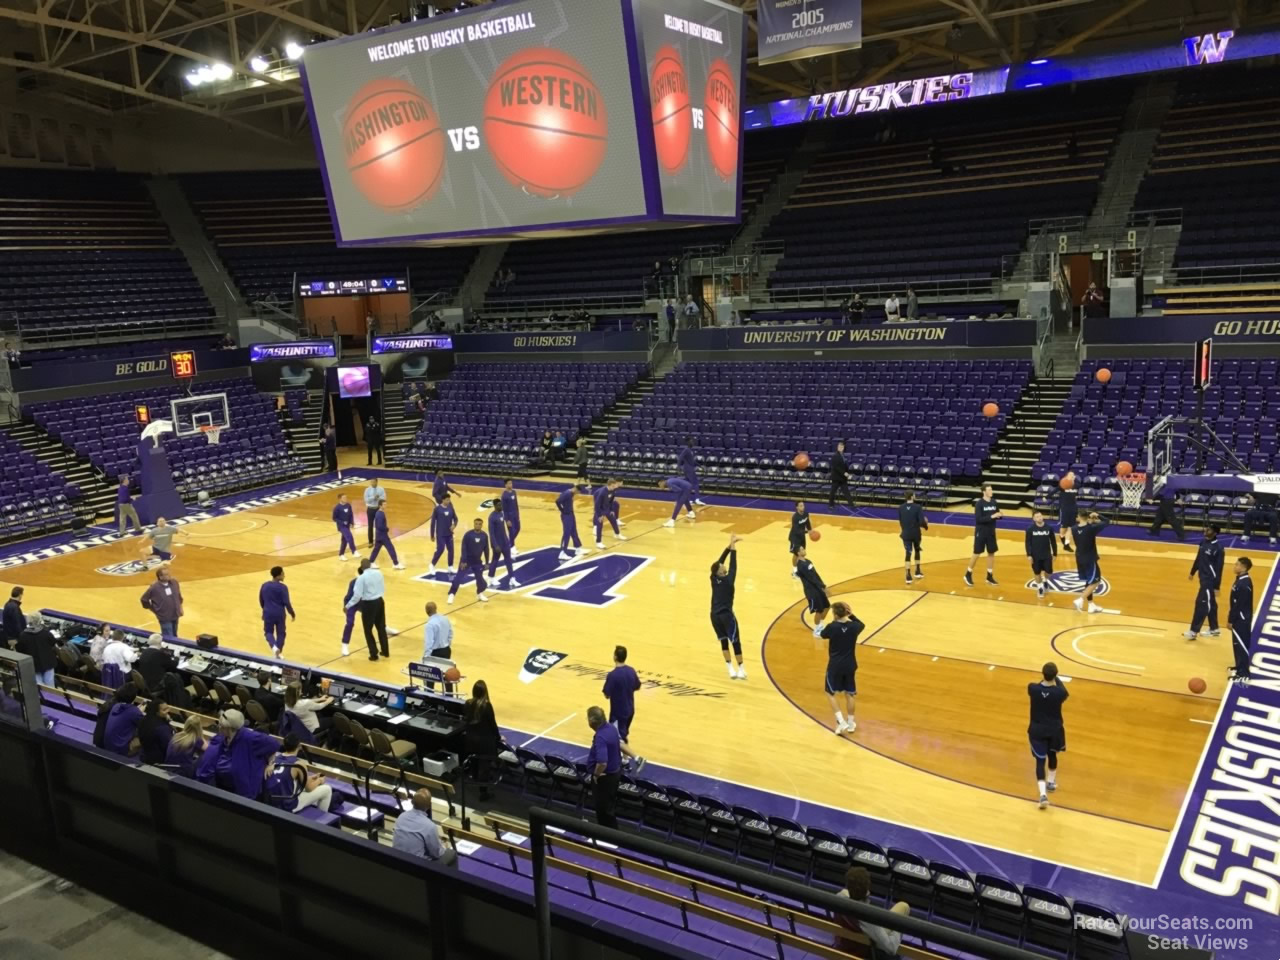 Seat View for Alaska Airlines Arena Section 14, Row 10